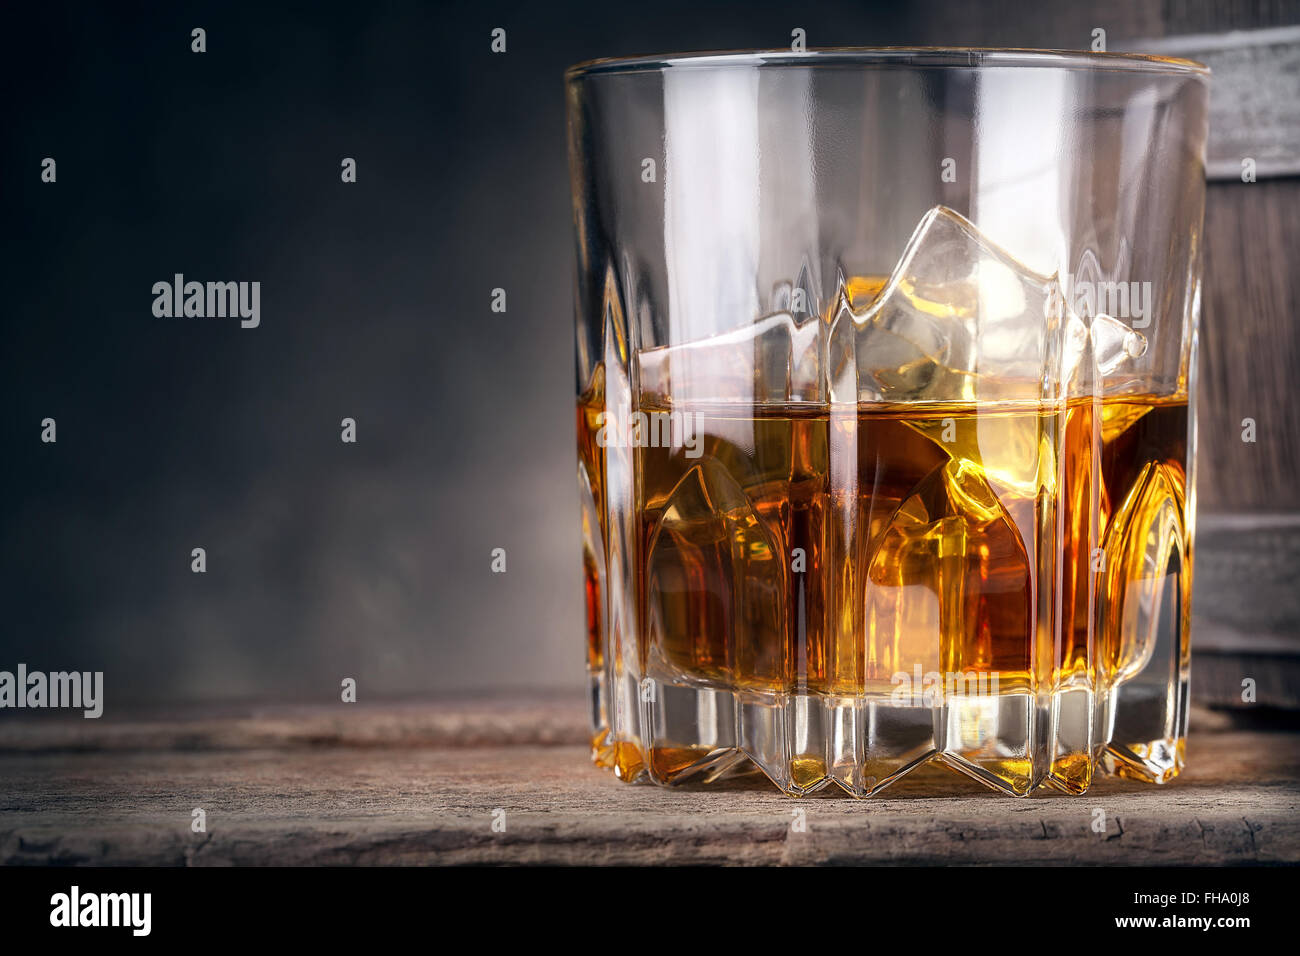 Glare glass of whiskey with ice and barrel in the background - Stock Image